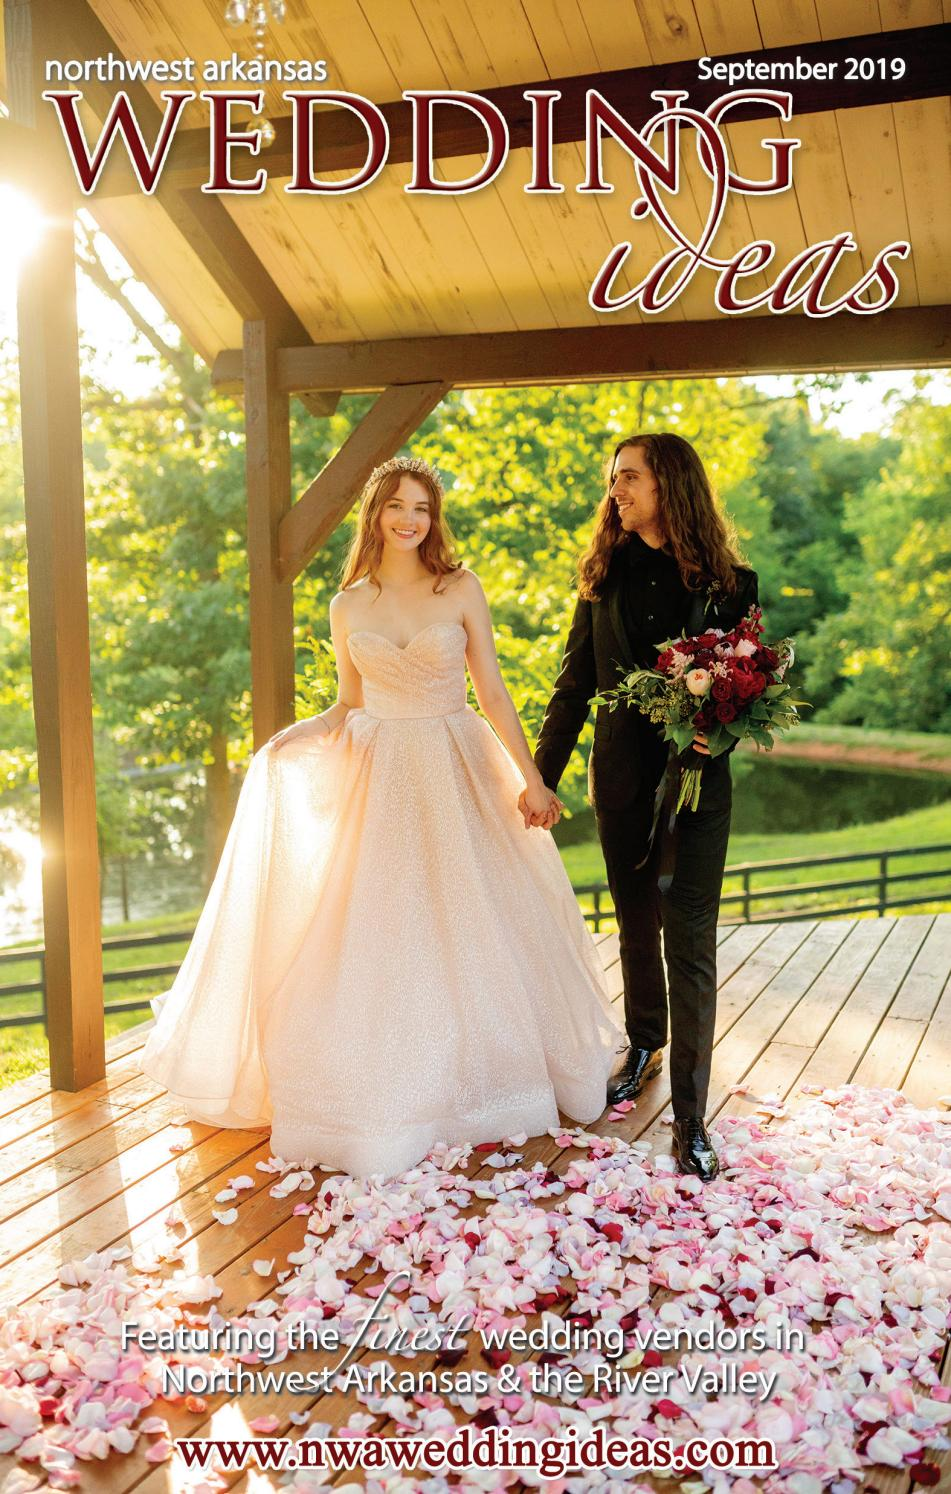 NW Arkansas Wedding Ideas - September